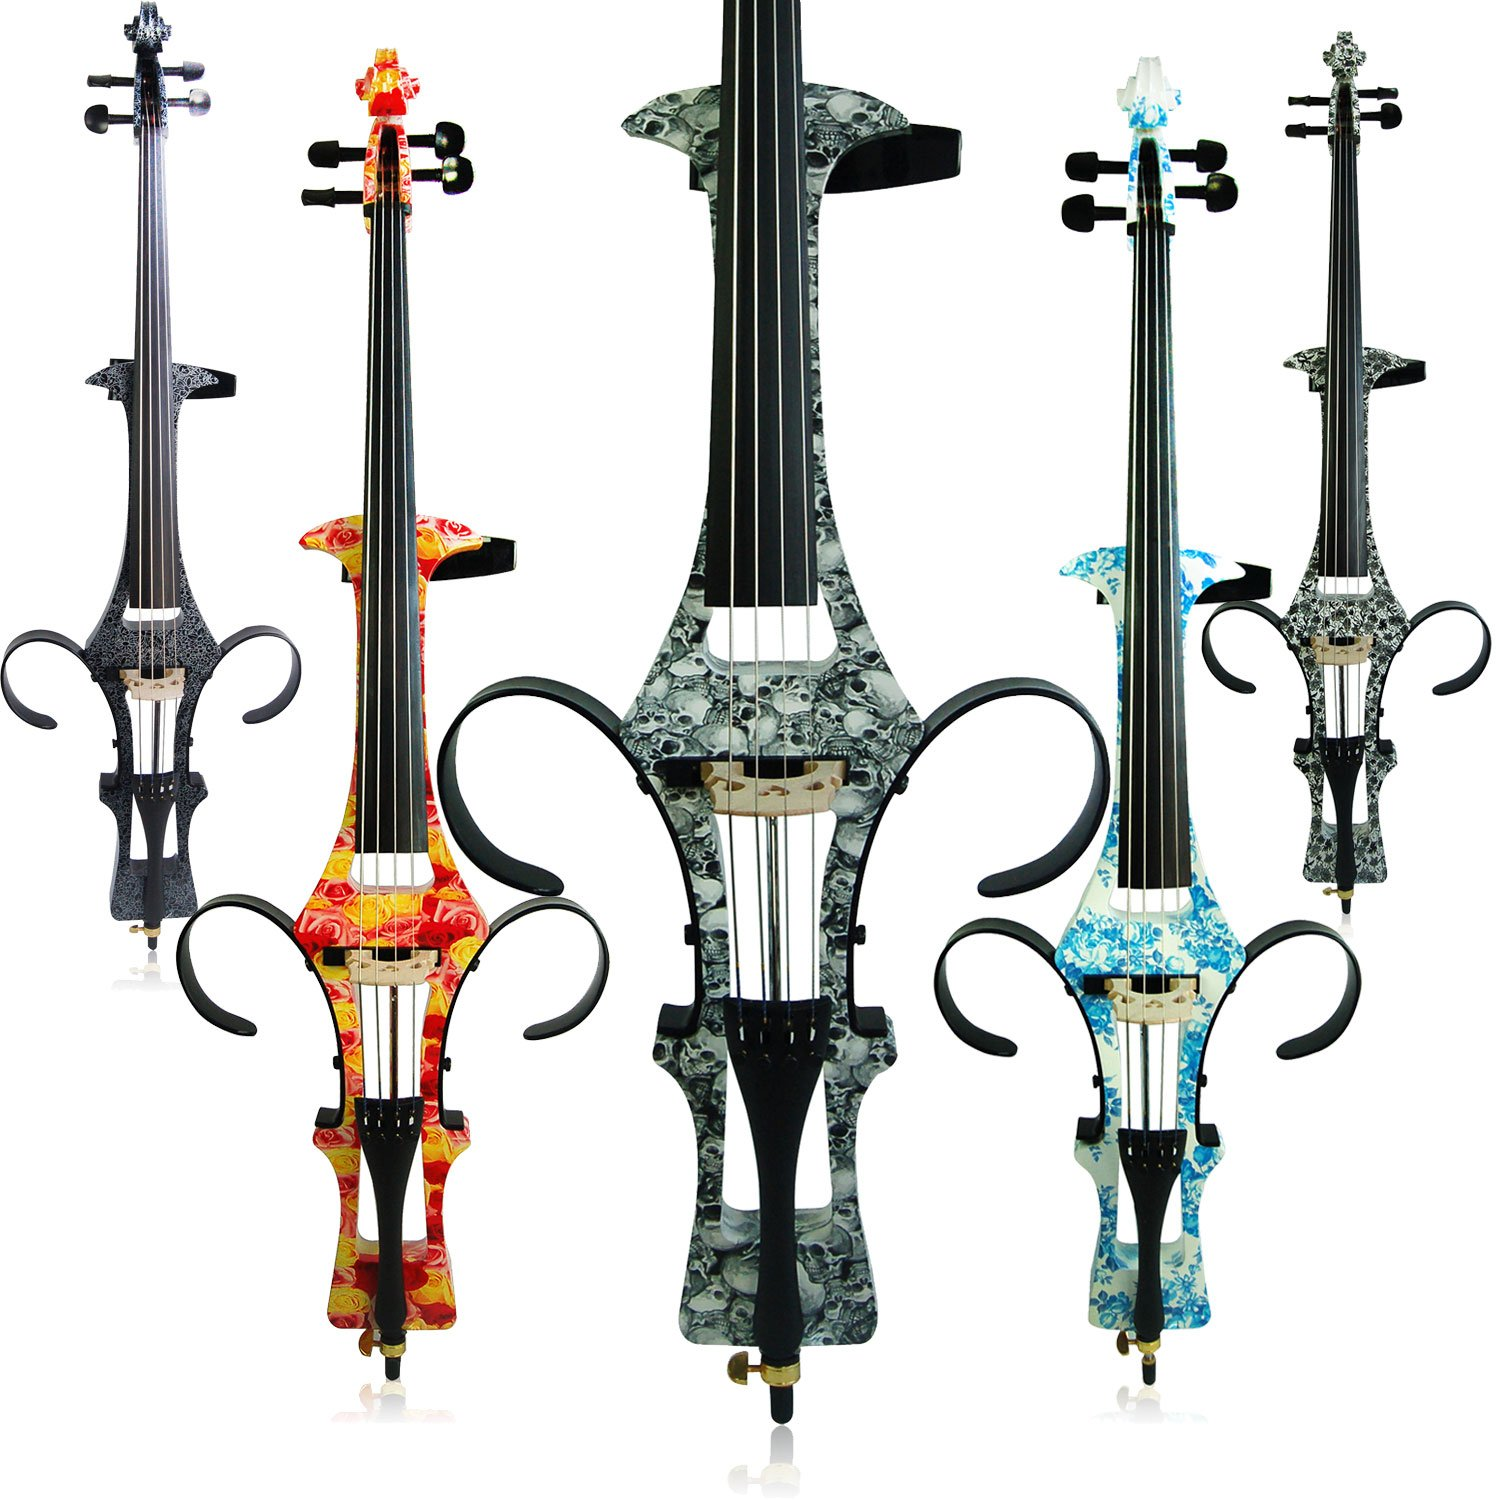 Aliyes Handmade Professional Solid Wood Electric Cello 4/4 Full Size Silent Electric Cello-Skull by Aliyes